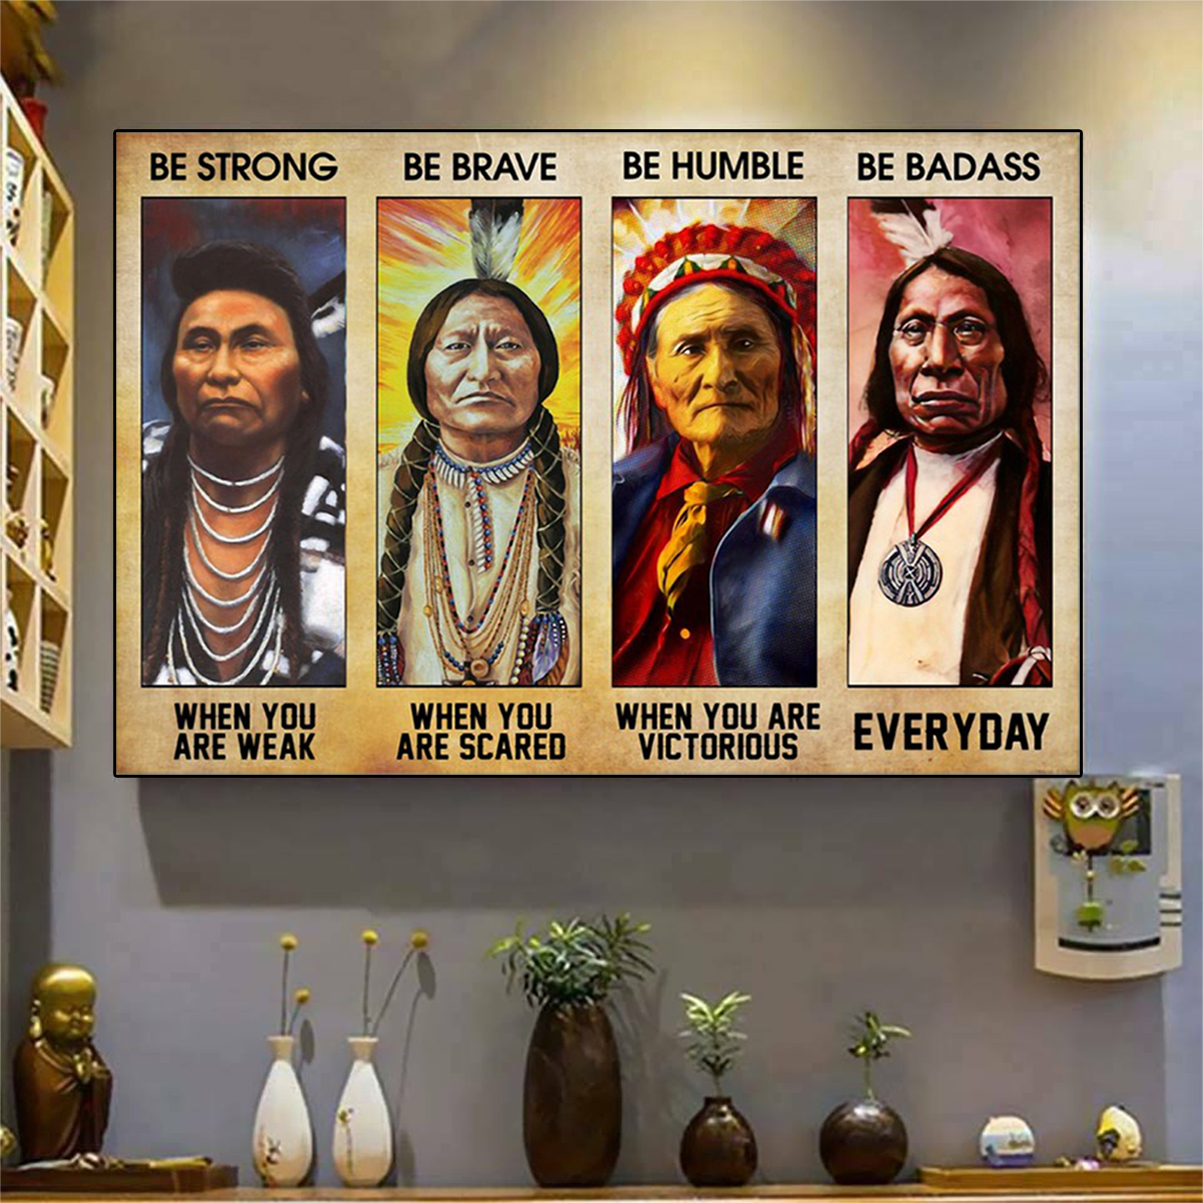 Native american be strong be brave be humble be badass poster A2